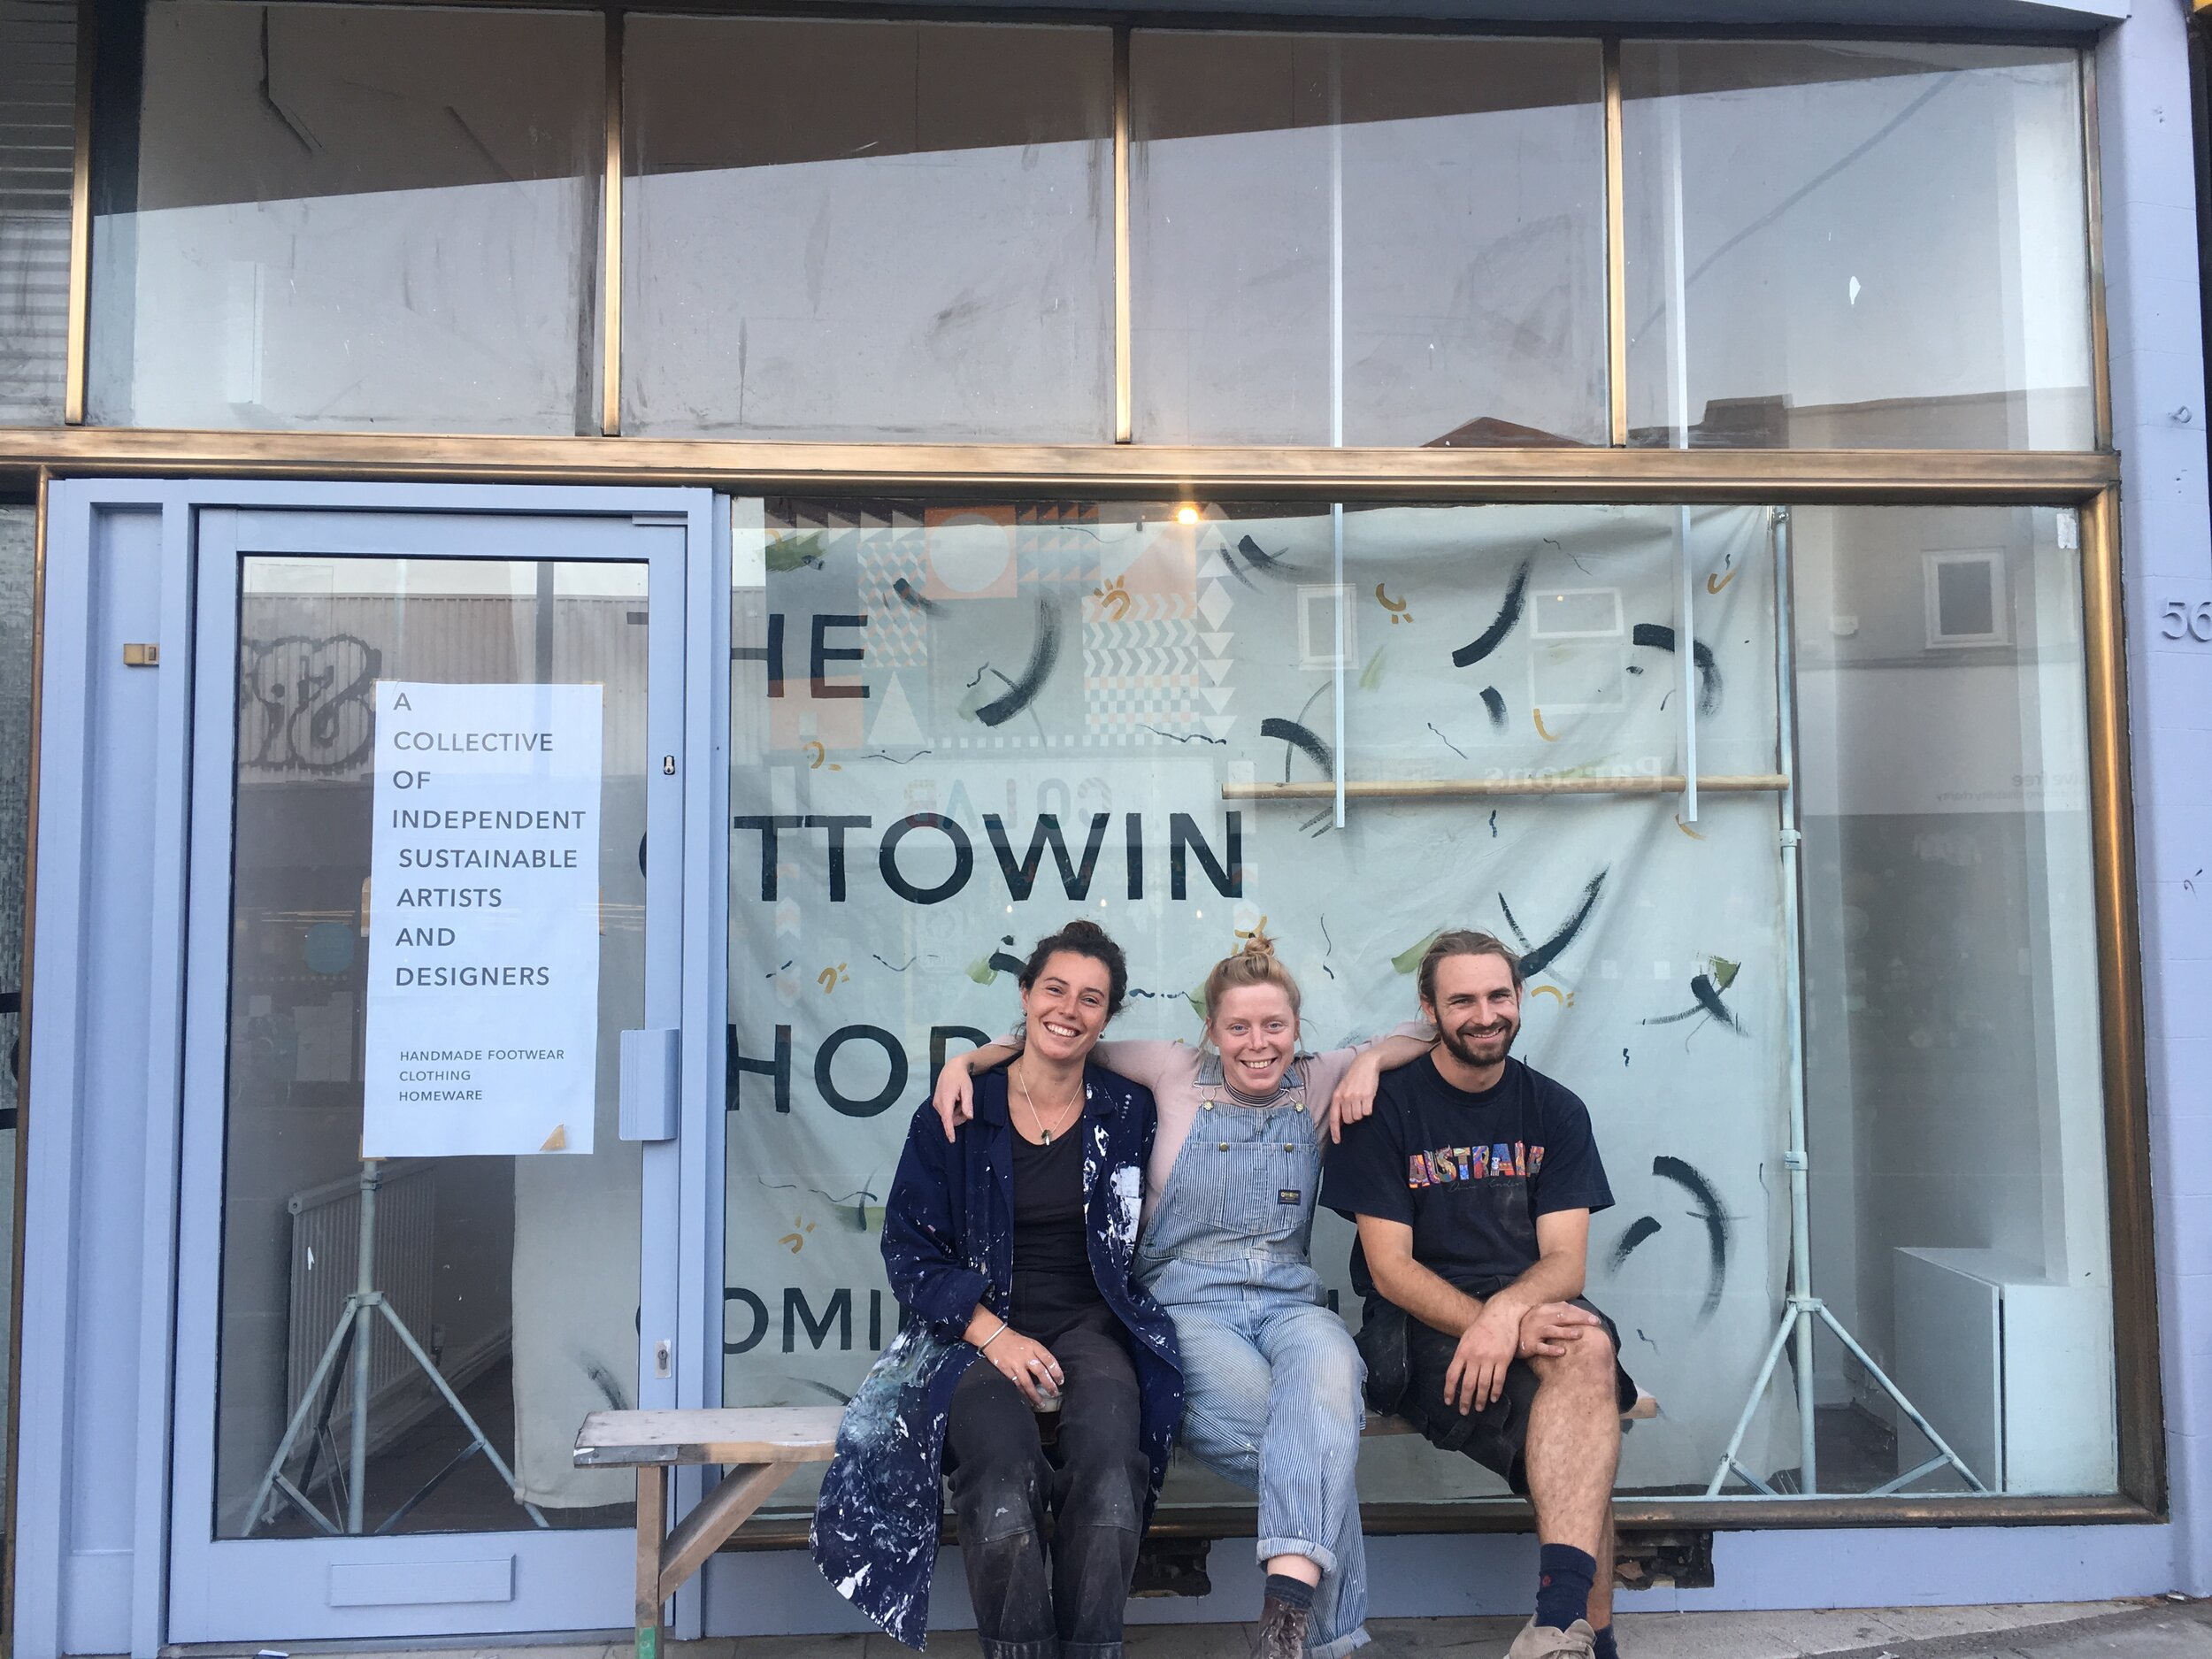 SAY HELLO TO THE NEW OTTOWIN SHOP ! :open party friday 27th 6-10pm :at 56 Gloucester Road :come see the space! :come see the makers! -